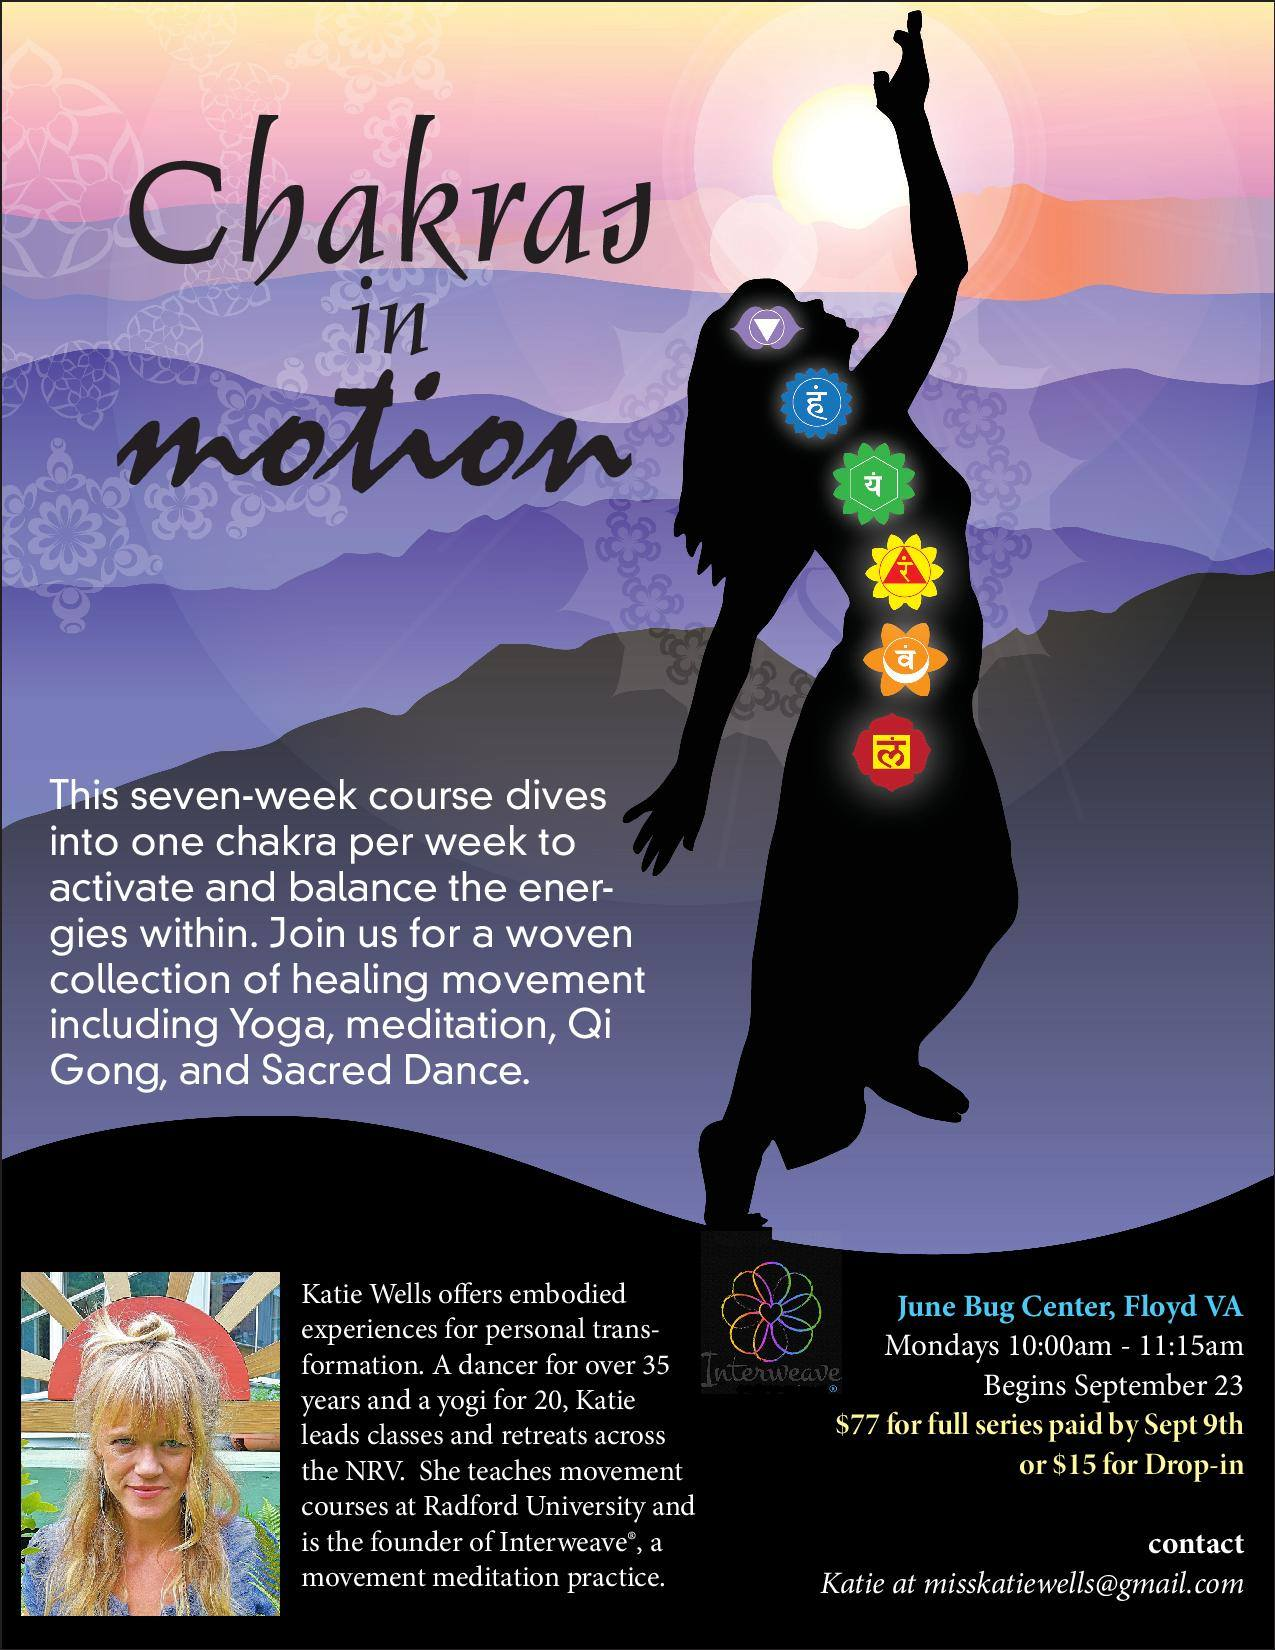 Chakras in Motion at The June Bug Center in Floyd